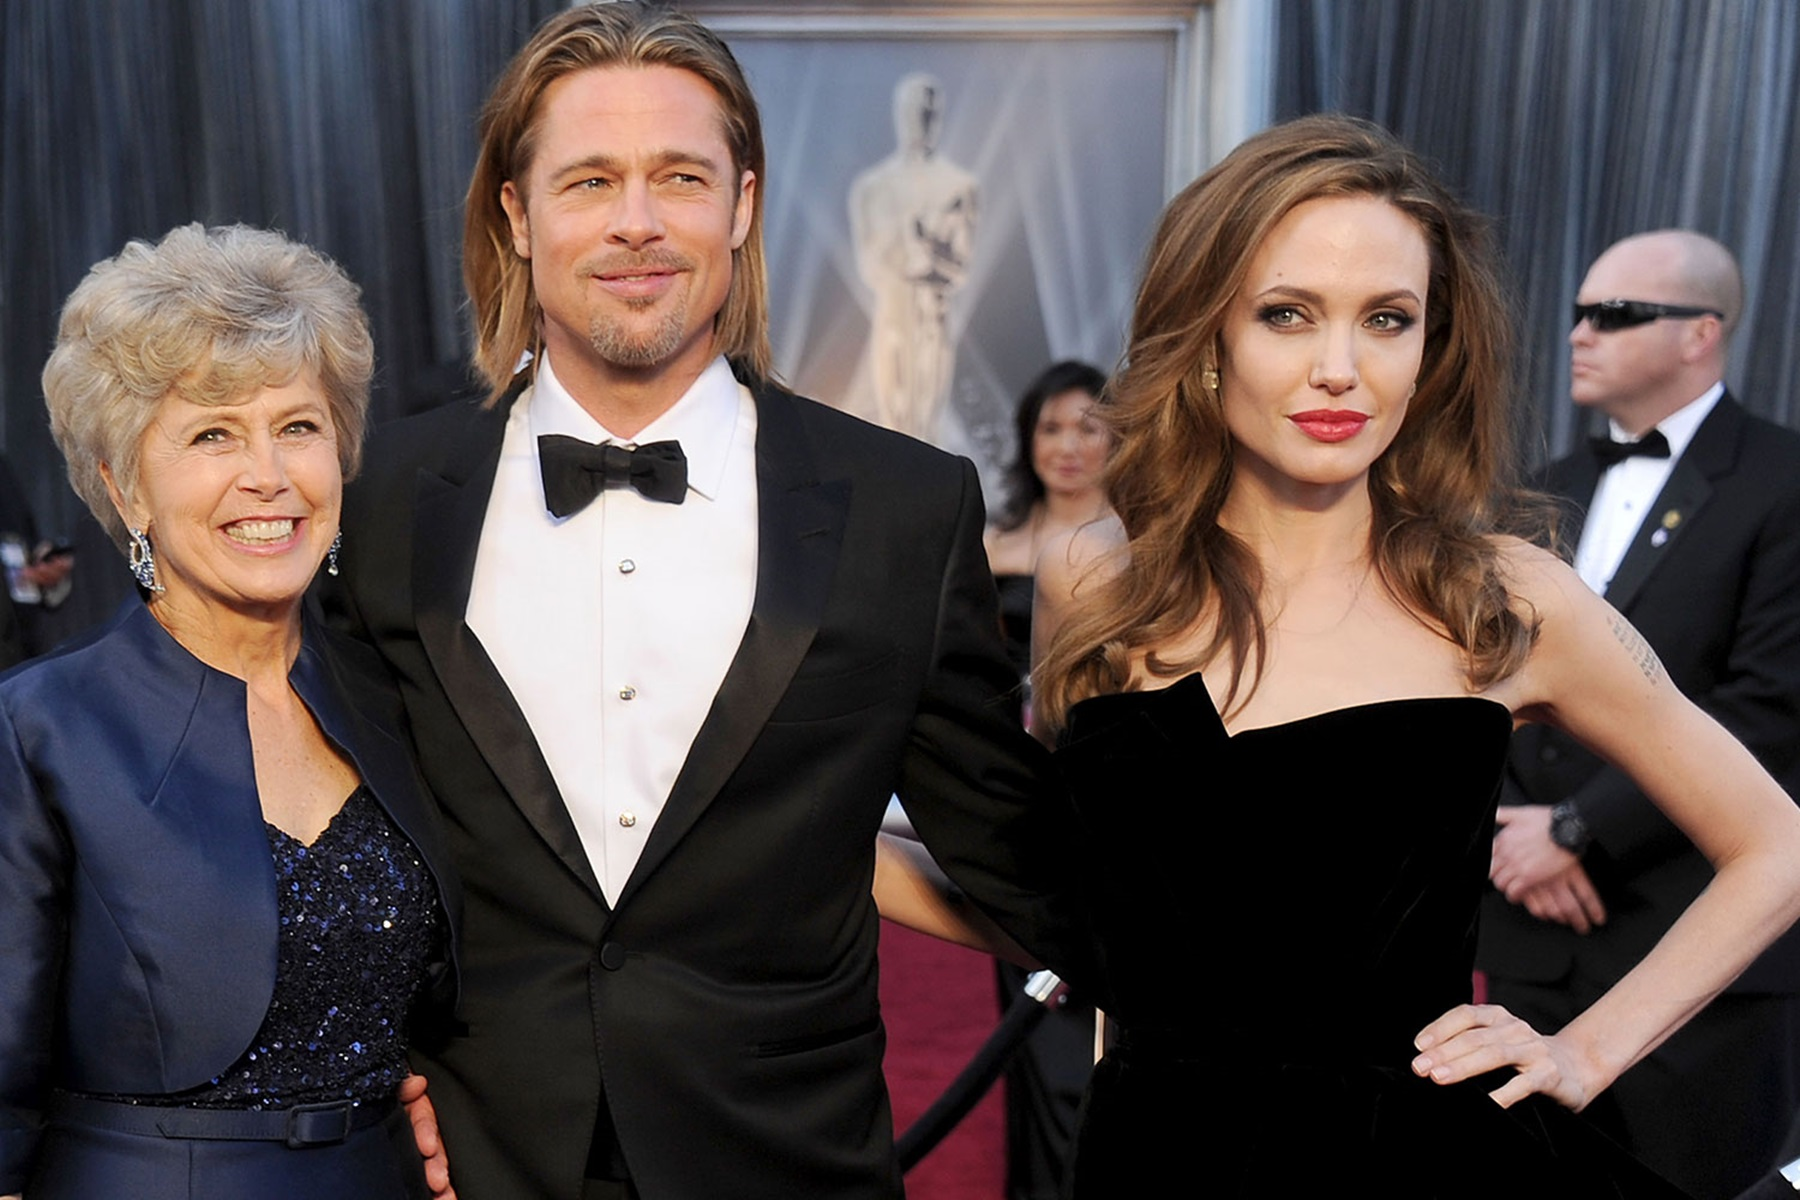 Jane Pitt Brad Angelina Jolie Divorce